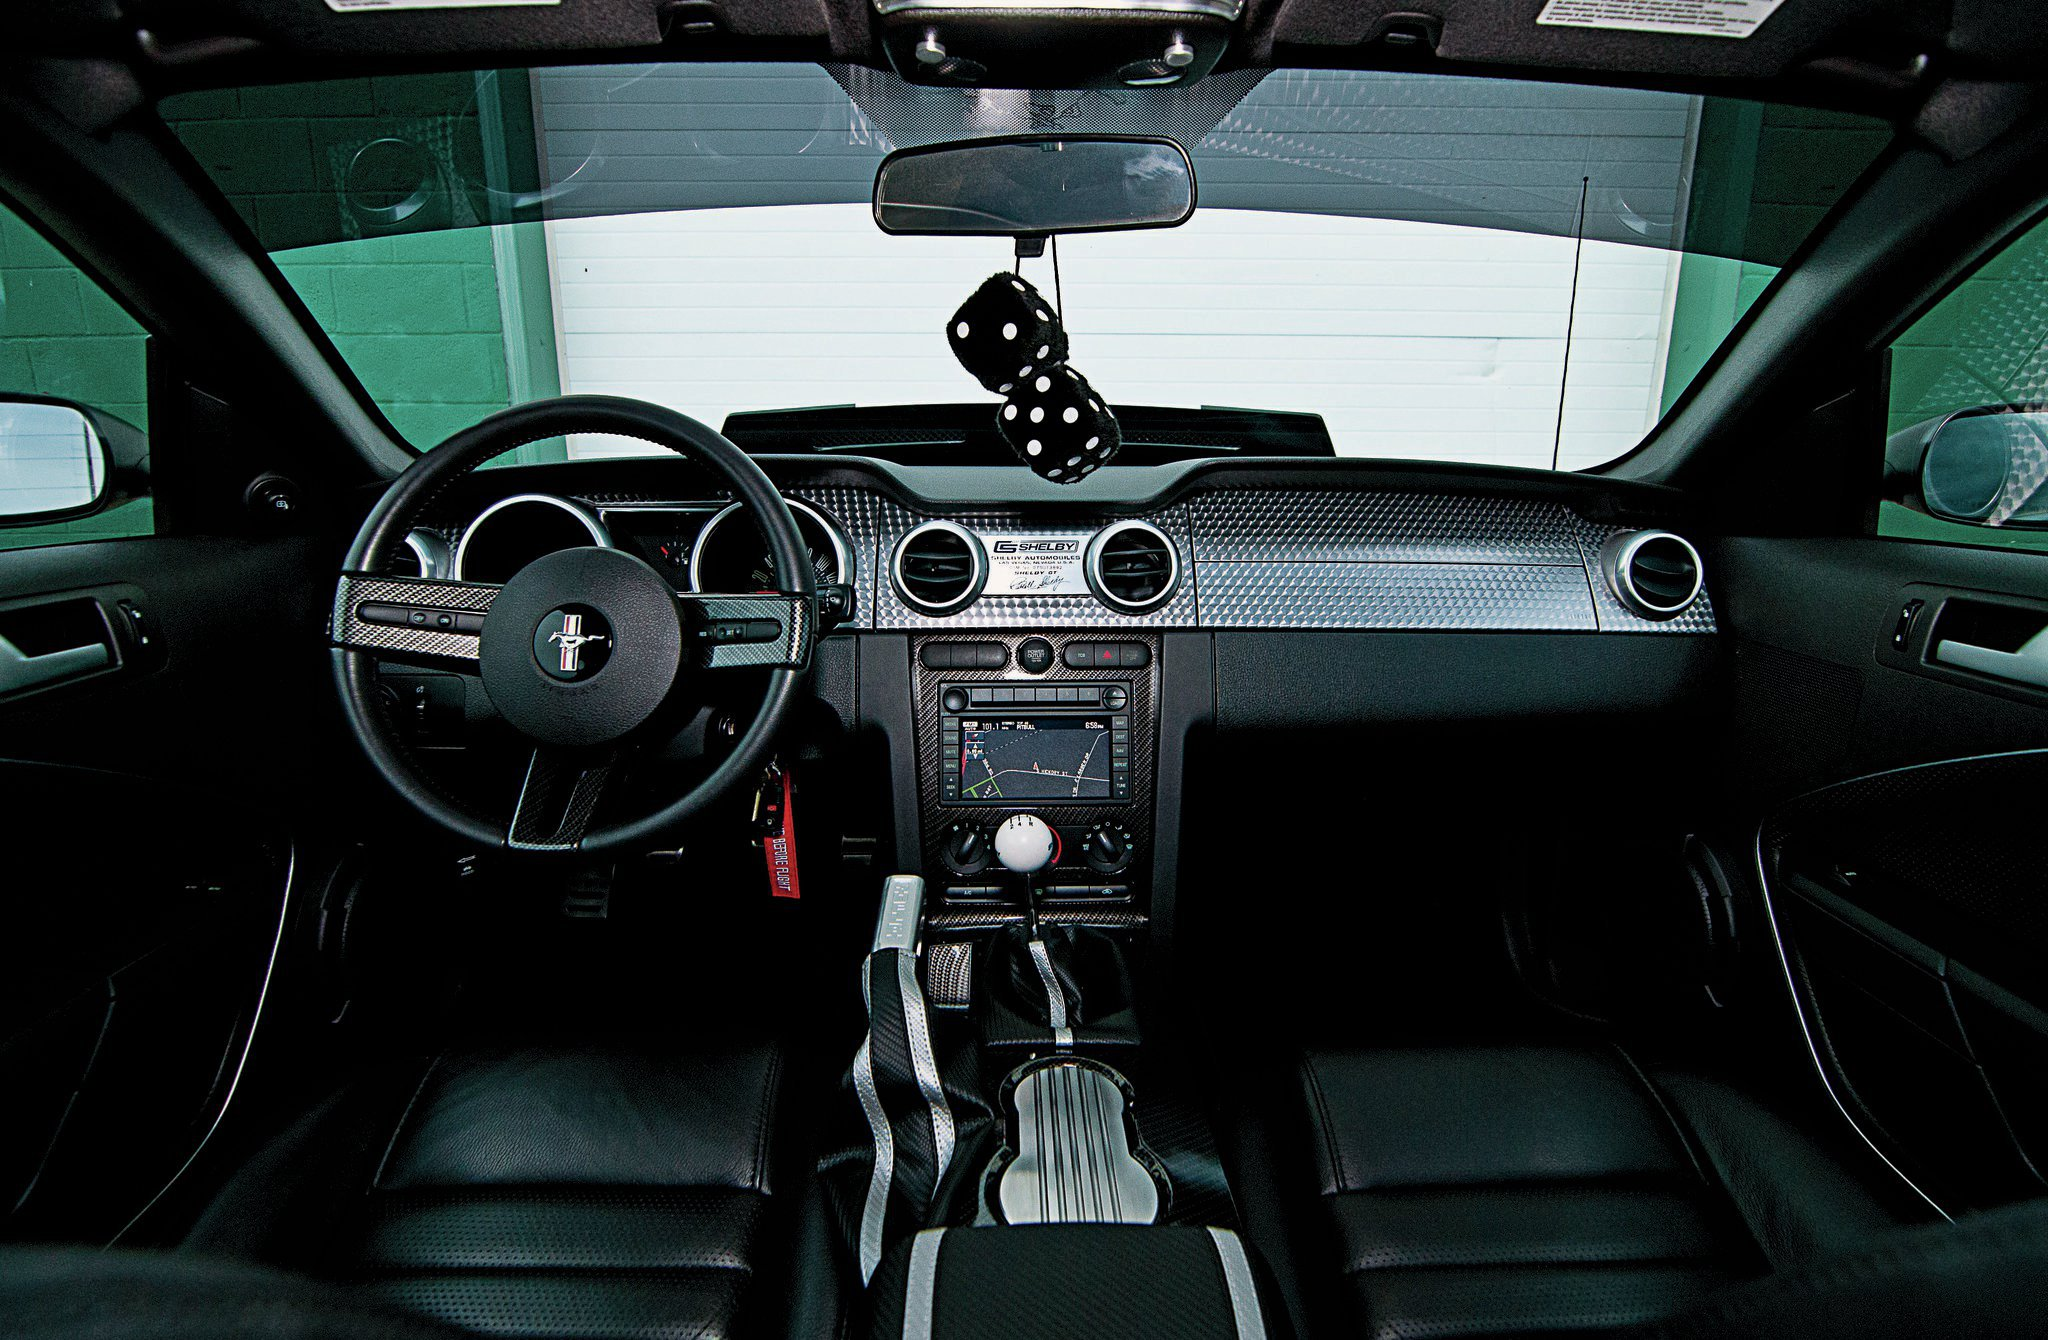 2007 Ford Mustang Shelby Gt Interior Dash